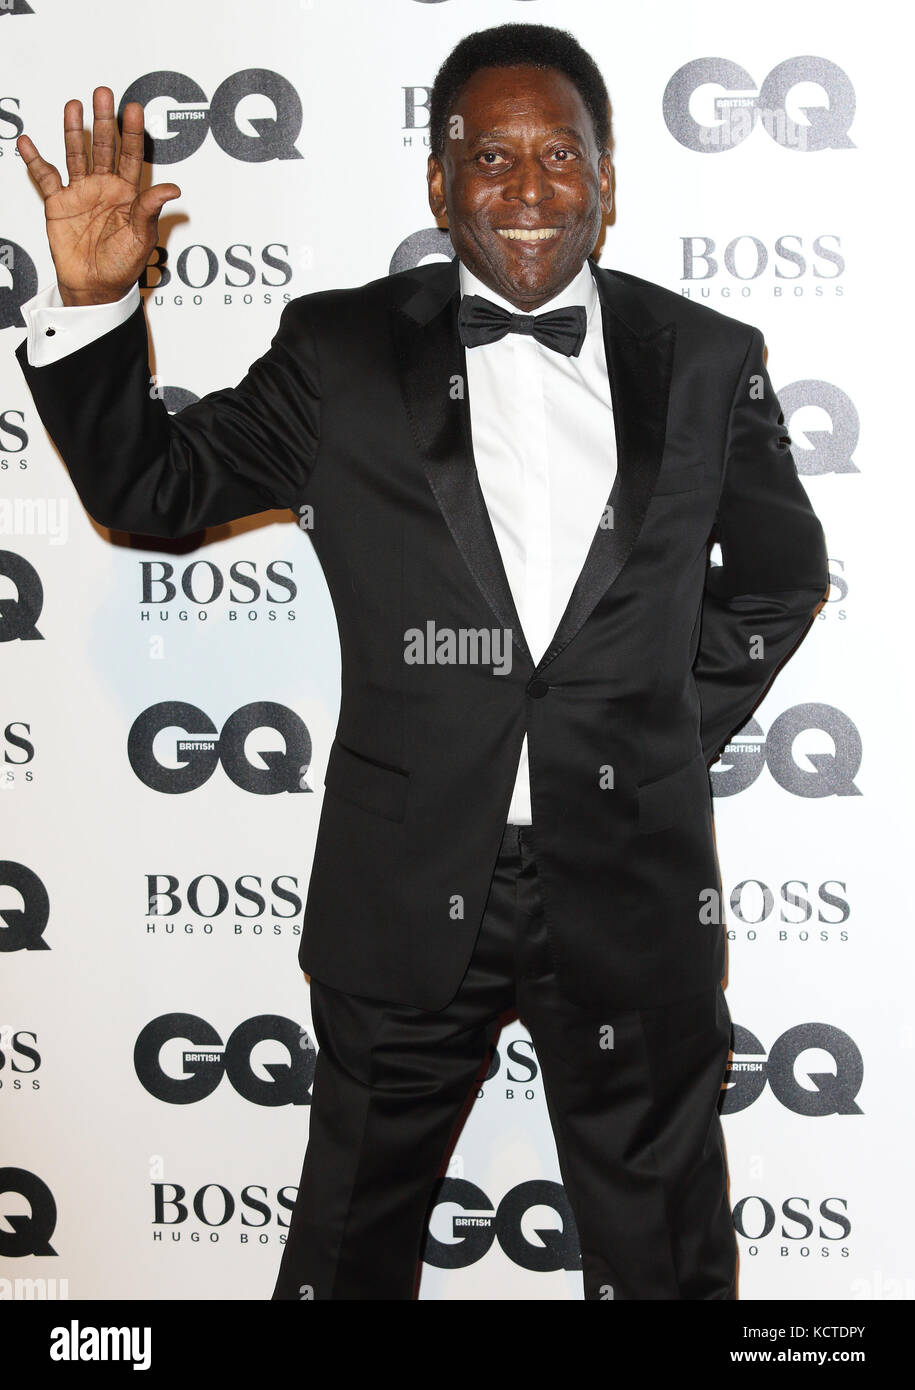 GQ Men of the Year Awards at Tate Modern, London  Featuring: Pelé Where: London, United Kingdom When: 05 Sep 2017 Stock Photo